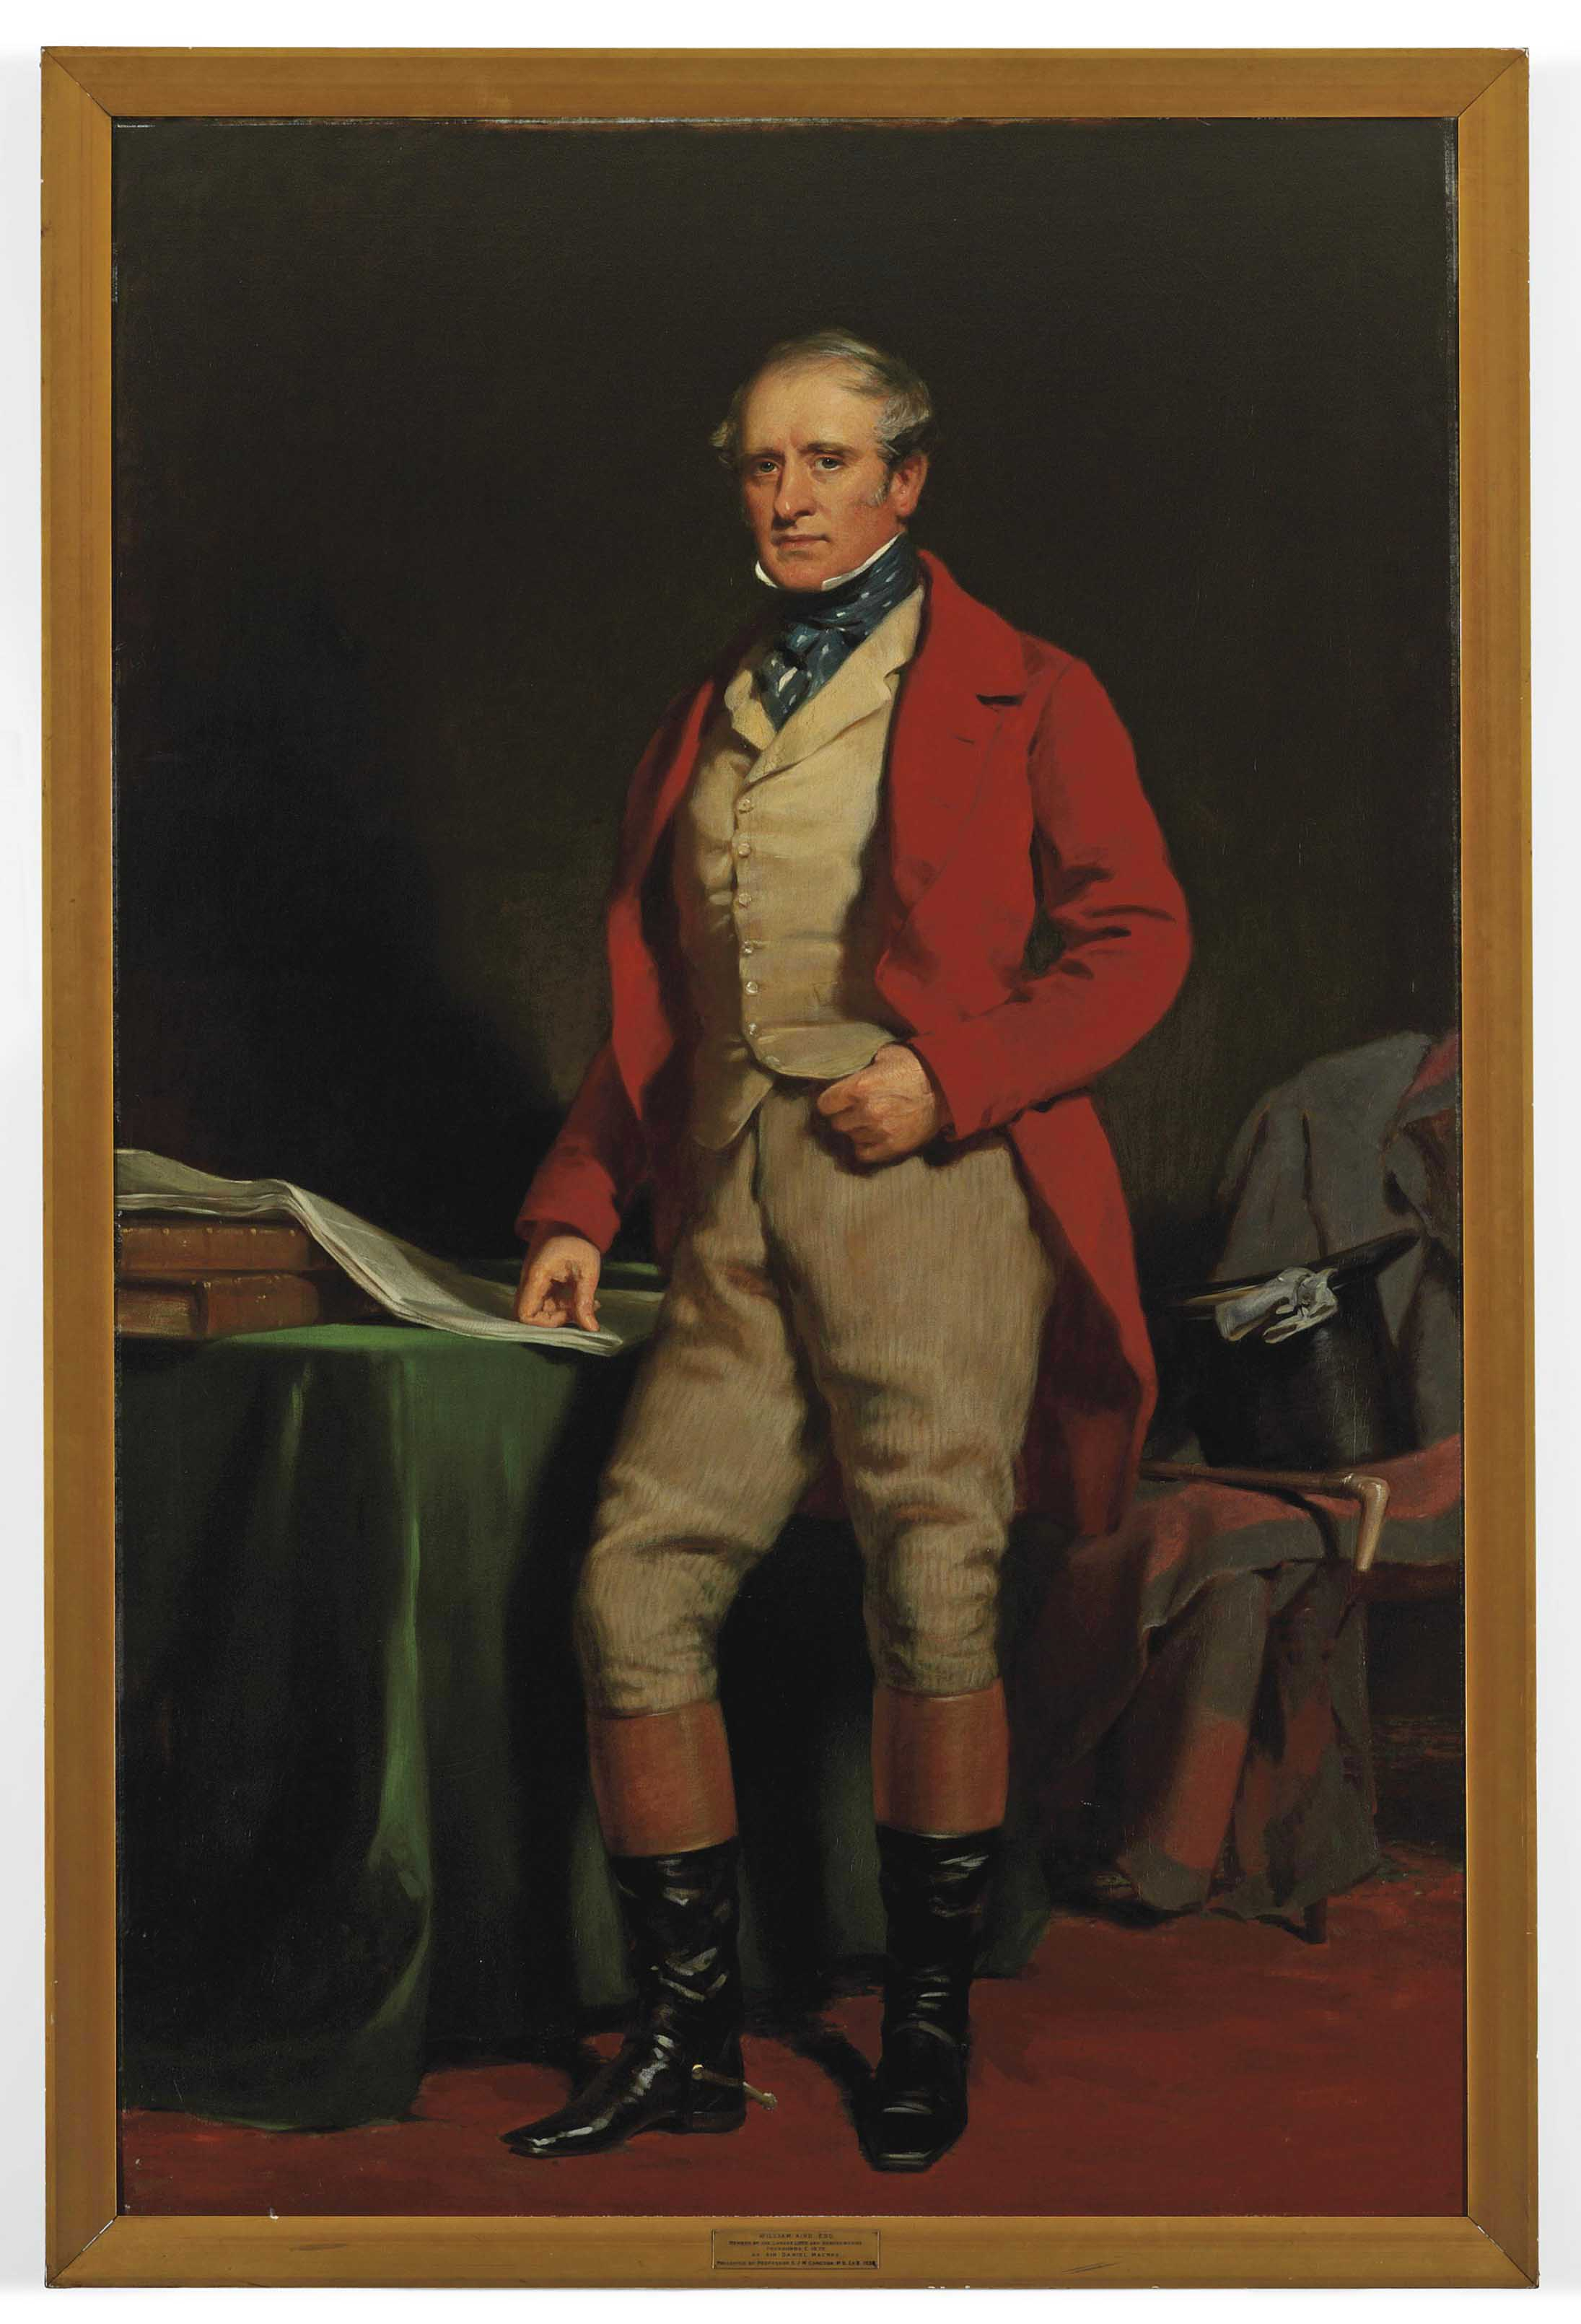 Portrait of William Aird, member of the Lanarkshire and Renfrewshire Foxhounds, full-length, in hunting dress, standing by a green draped table, his right hand resting on a newspaper